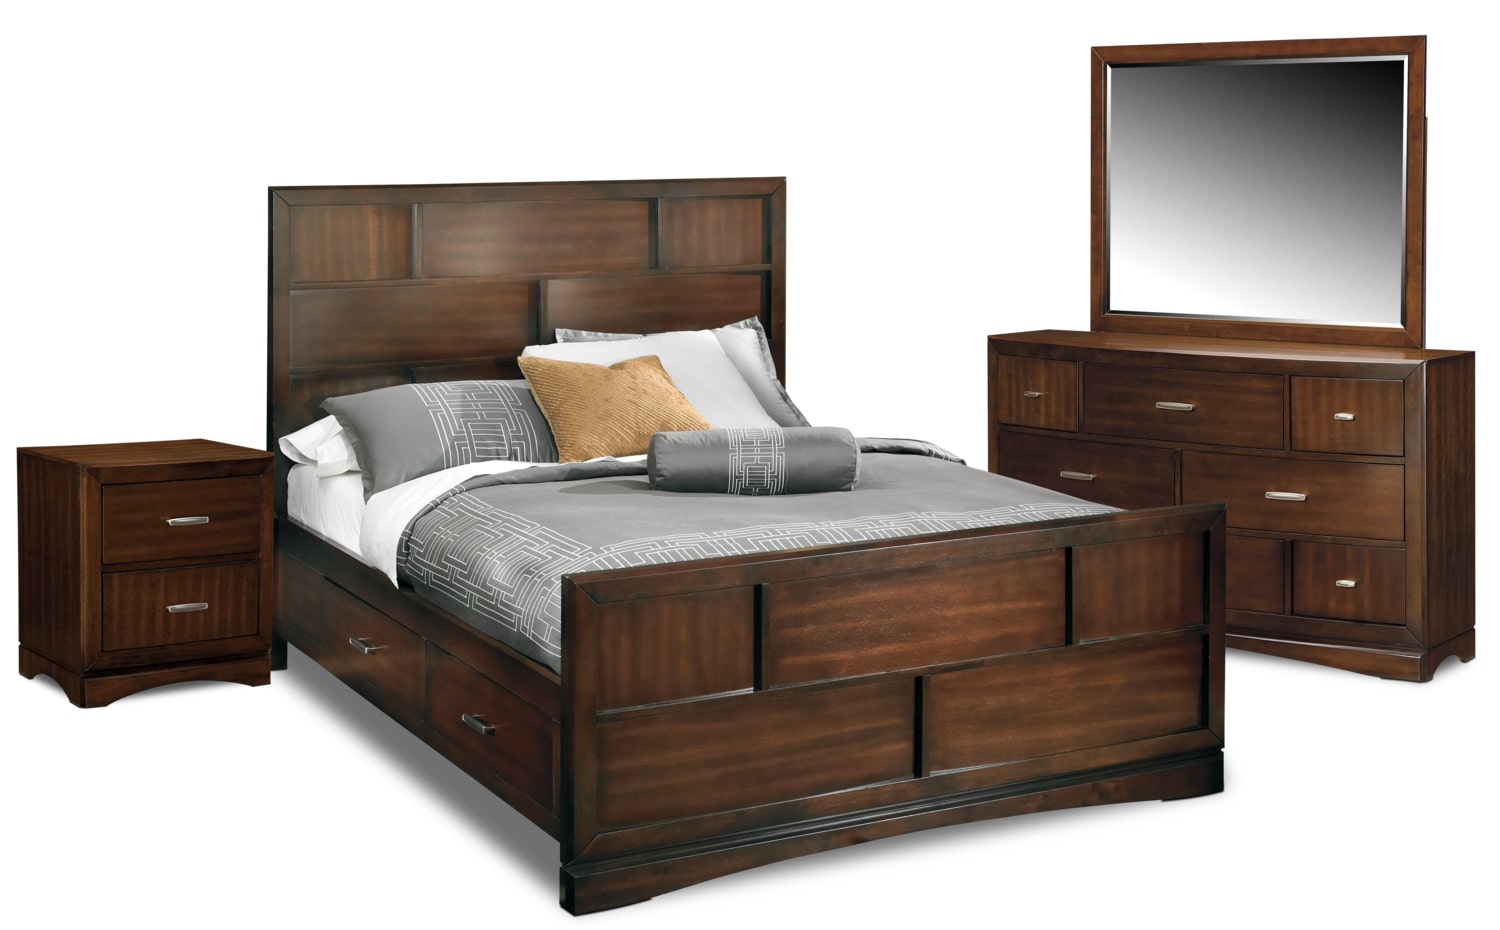 Bedroom Furniture   Toronto 6 Piece King Storage Bedroom Set   Pecan